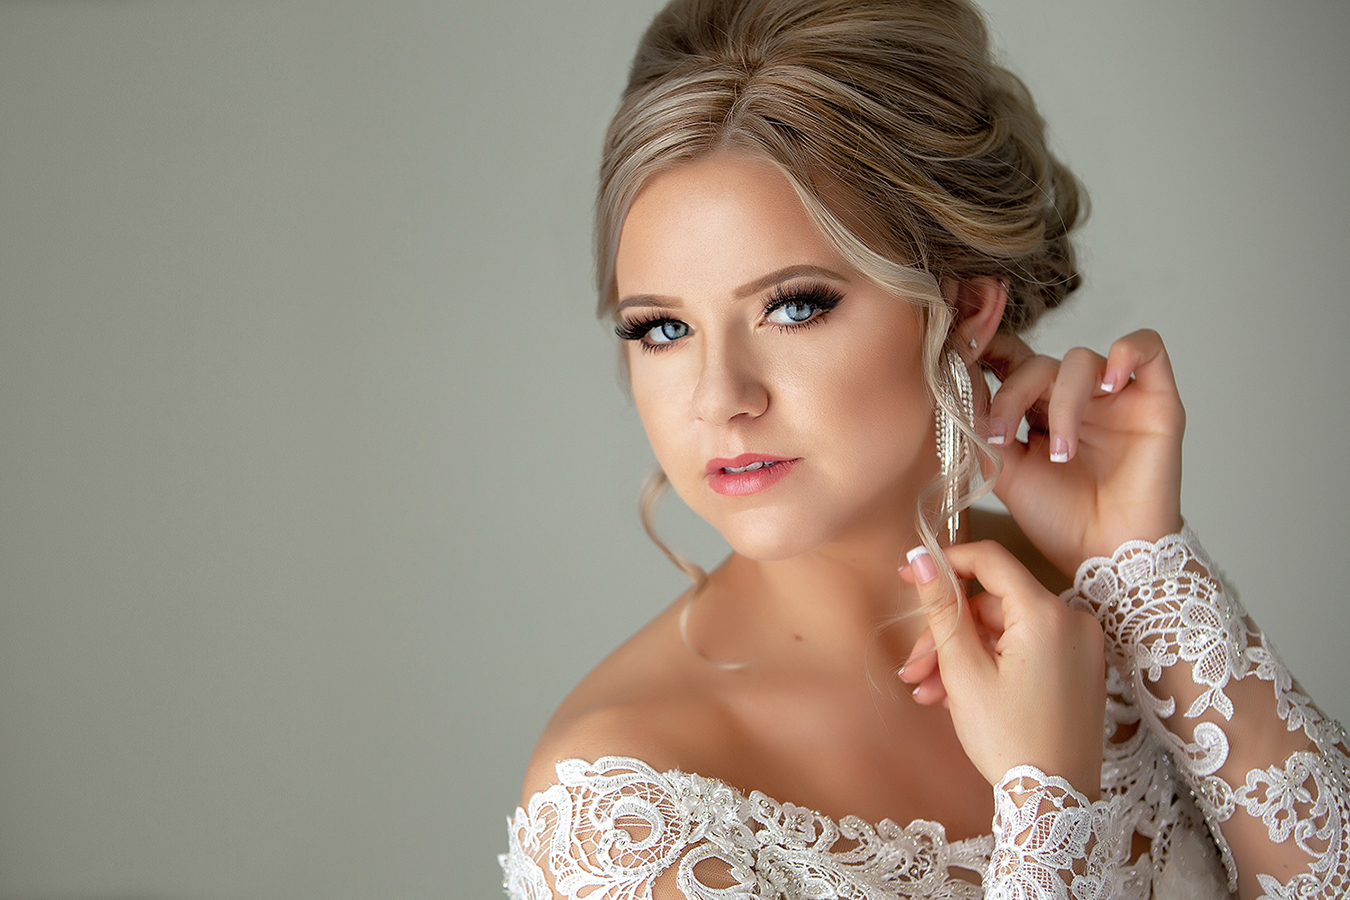 portrait-of-bride-with-blond-updo-silver-earrings-lace-gown-amber-henry-photography-michigan